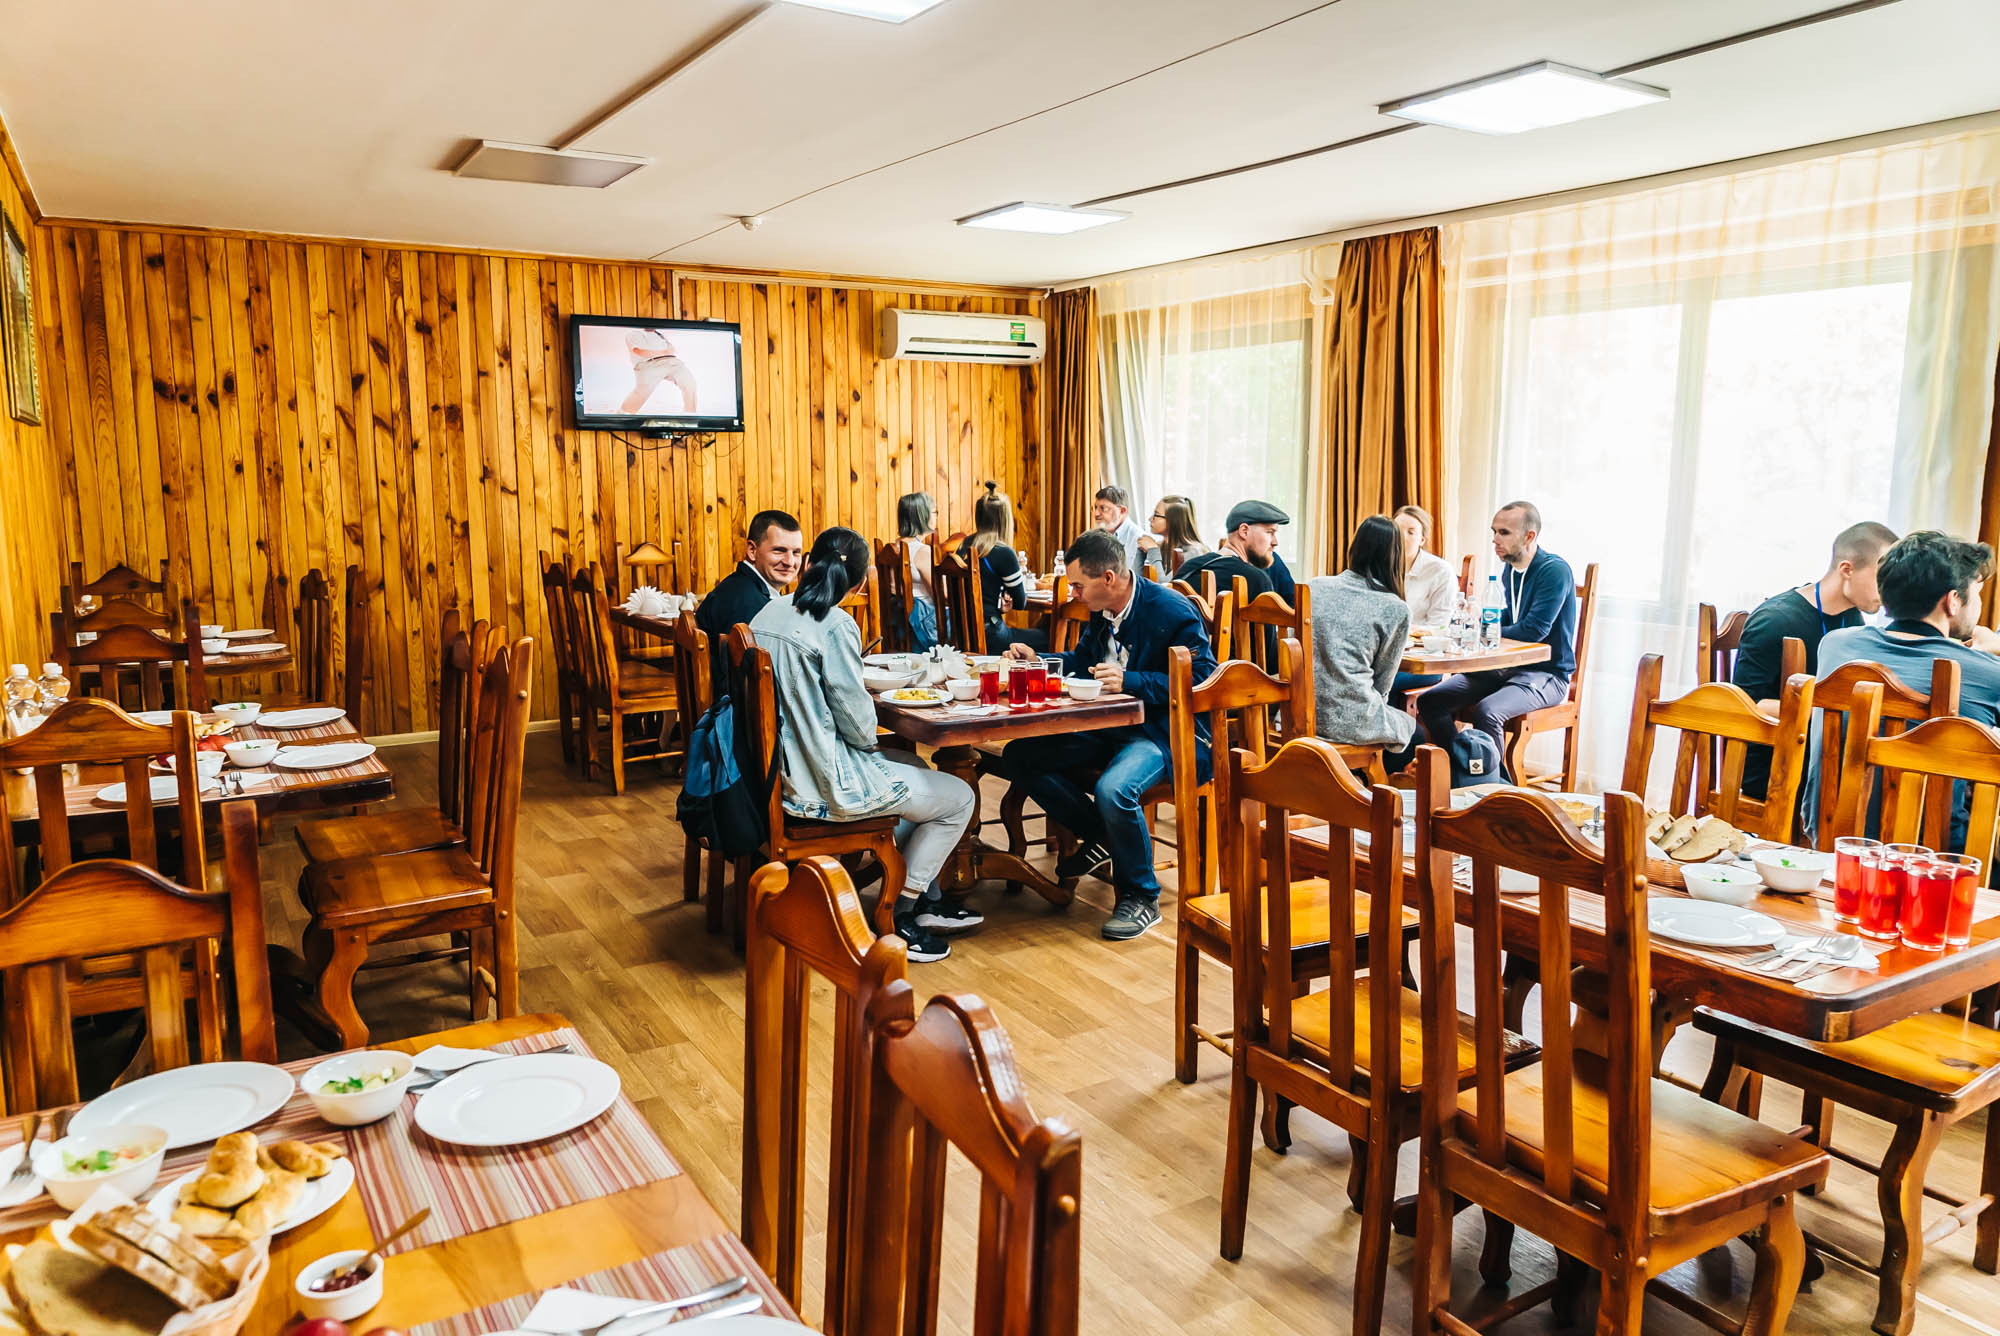 Lunch at a cafe in Chernobyl